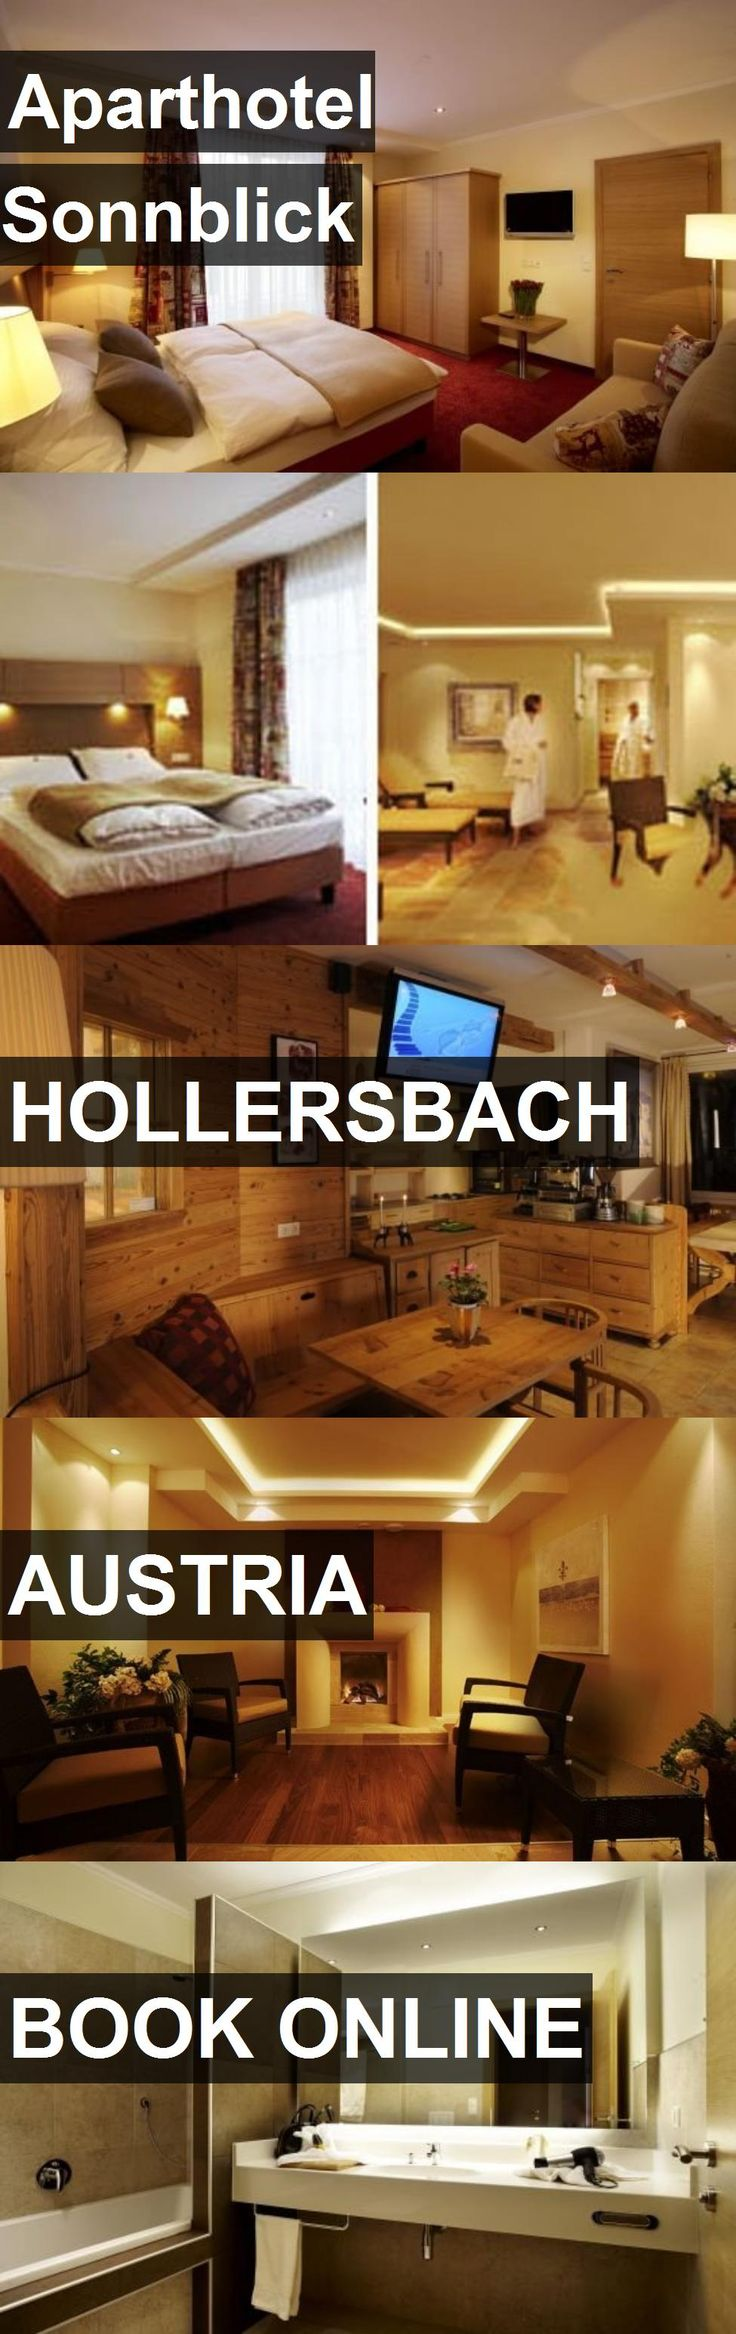 Aparthotel Sonnblick in Hollersbach, Austria. For more information, photos, reviews and best prices please follow the link. #Austria #Hollersbach #travel #vacation #hotel